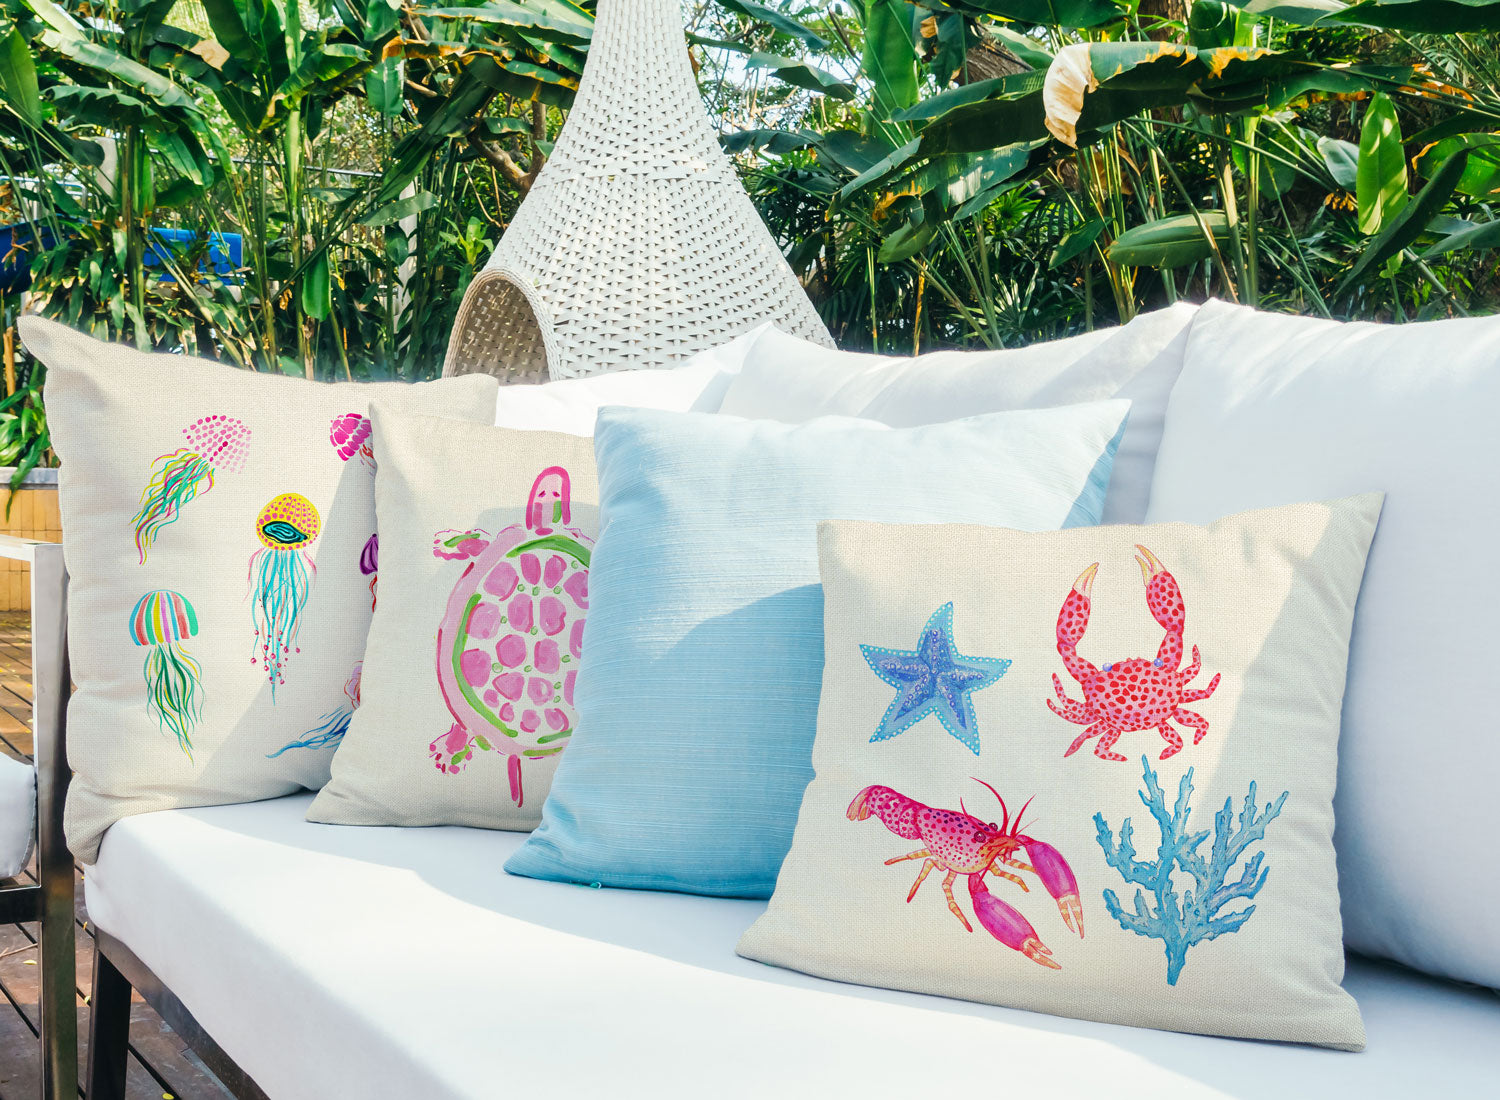 Tropical Reef Throw Pillow Cover - Coastal Designs Throw Pillow Cover Collection-Di Lewis